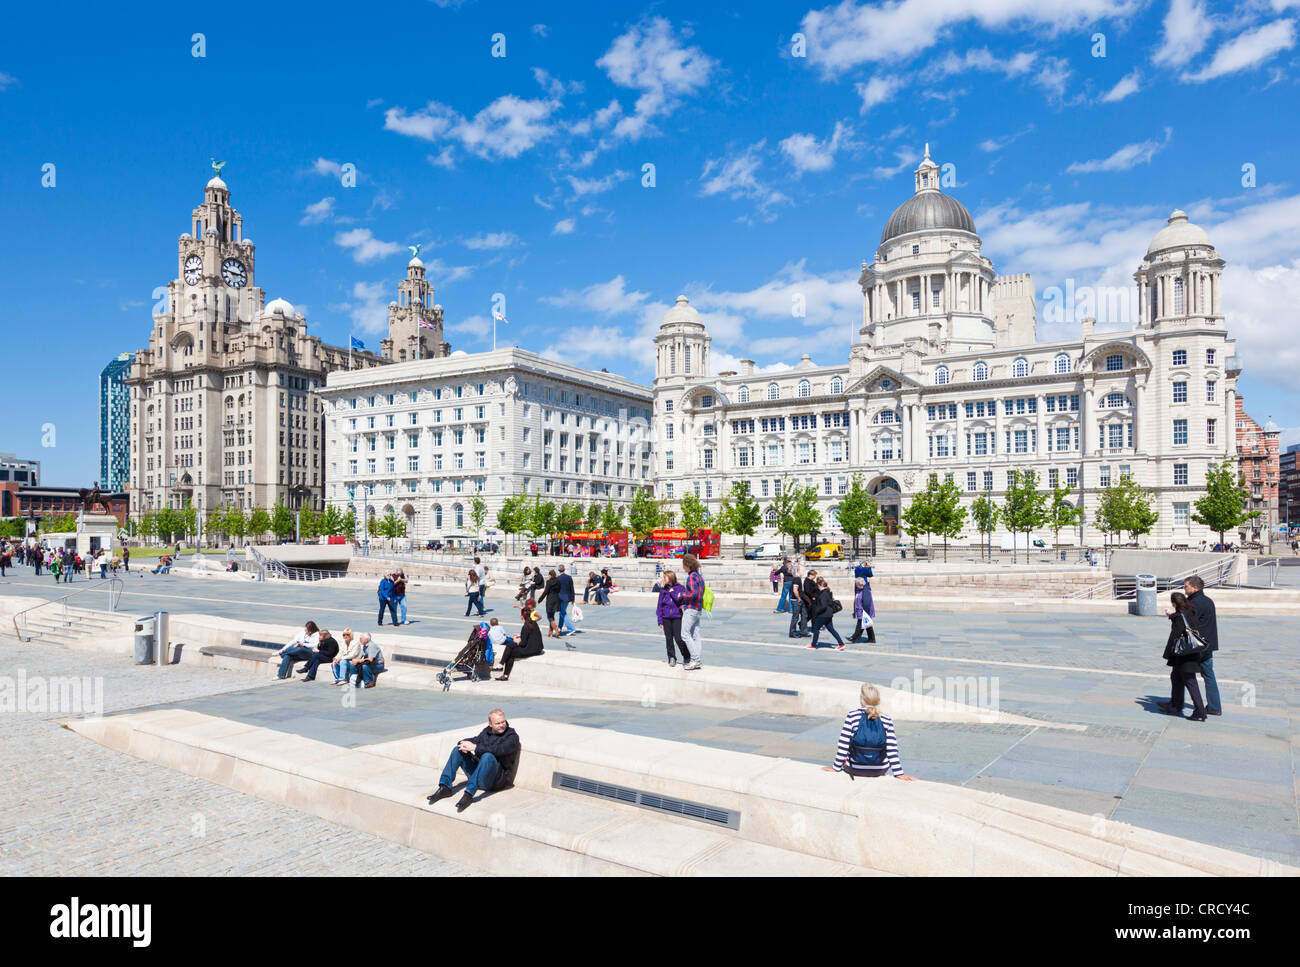 Pier head three graces buildings Liverpool waterfront  Merseyside England uk gb eu europe - Stock Image